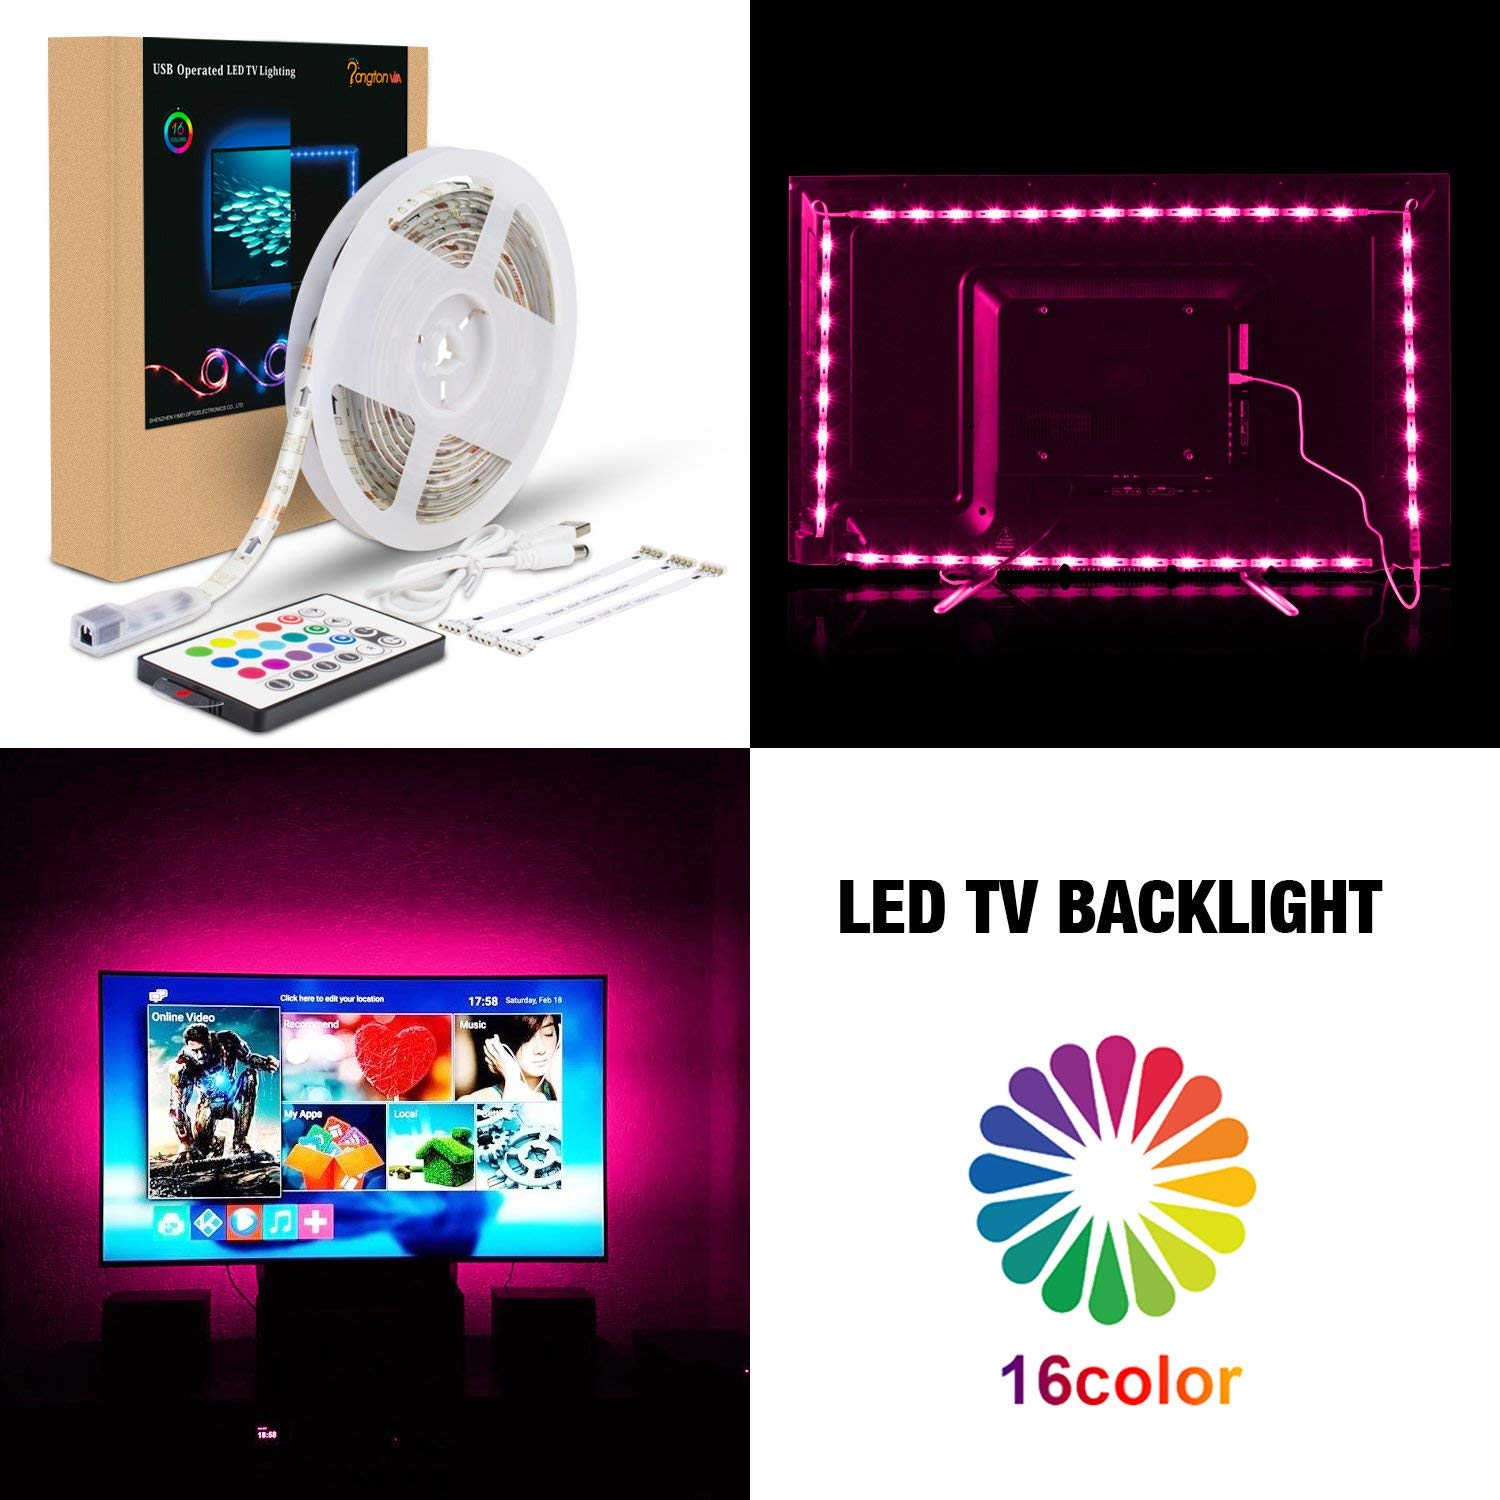 PANGTON VILLA Custom-Made TV Backlight kit for 48 to 50 Inches - 5050 Led Strips USB Powered with Remote Control - HDTV RGB Bias Lighting